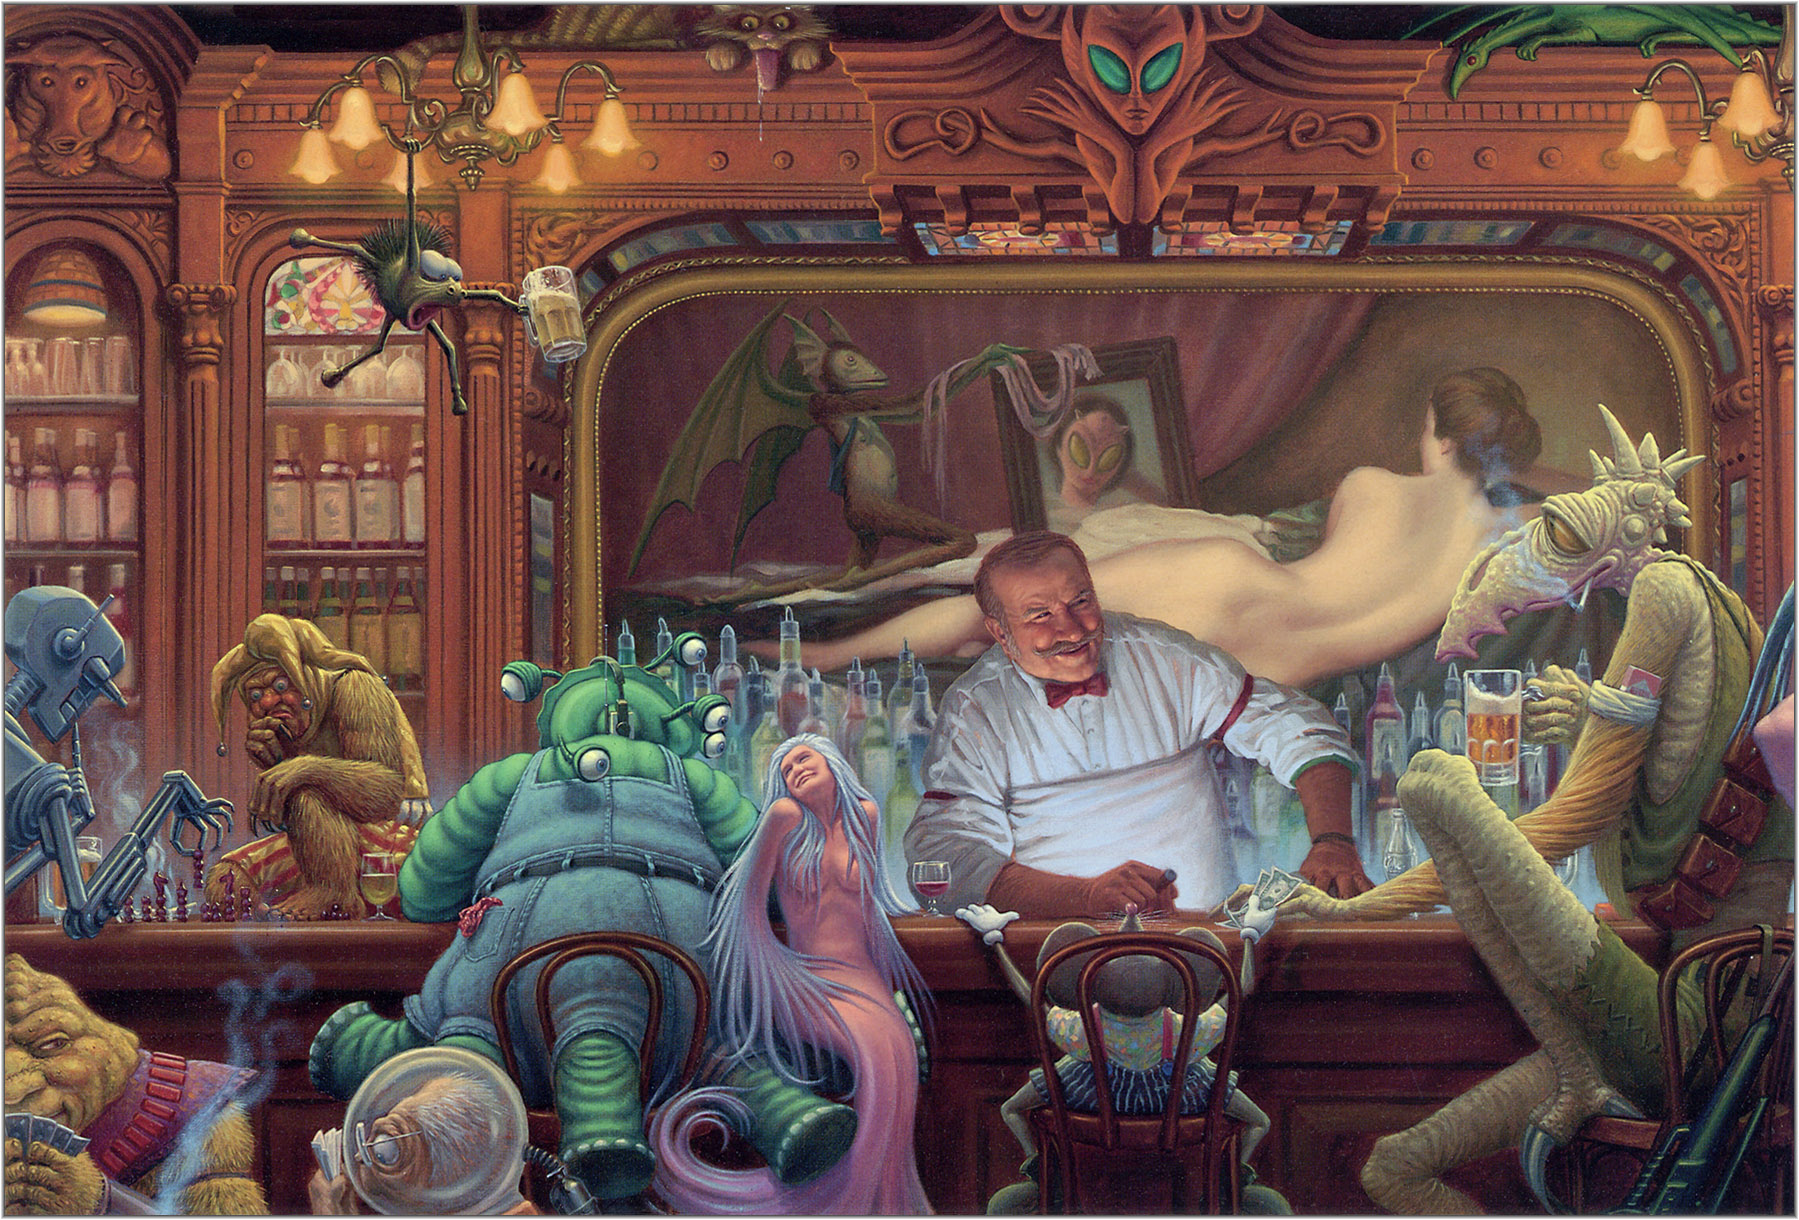 bar_fantasy_art_tavern_desktop_1799x1220_hd-wallpaper-511626